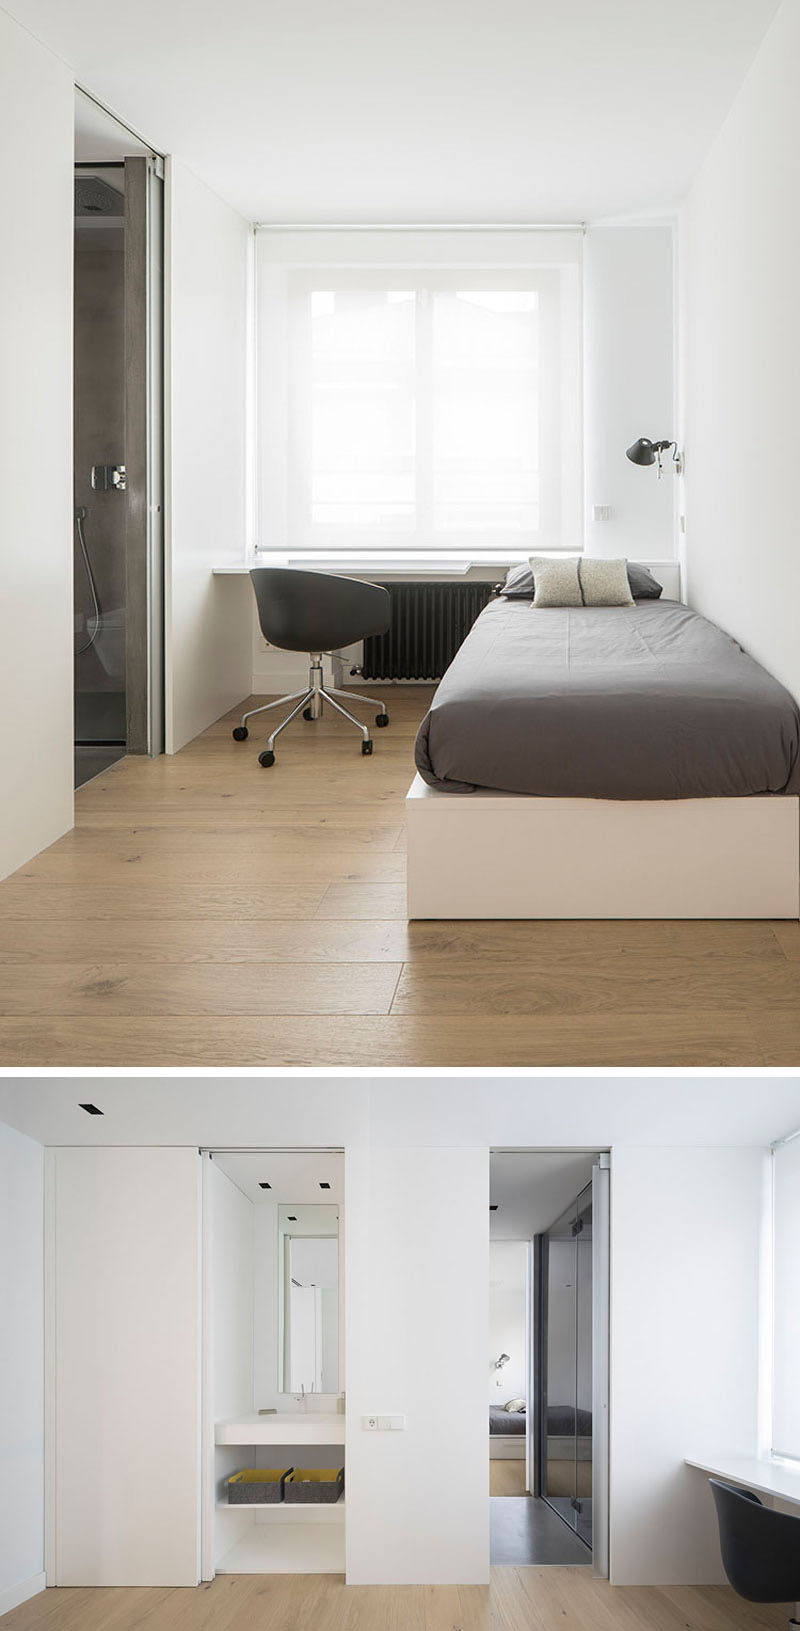 susanna cots has designed the interiors of a large apartment in